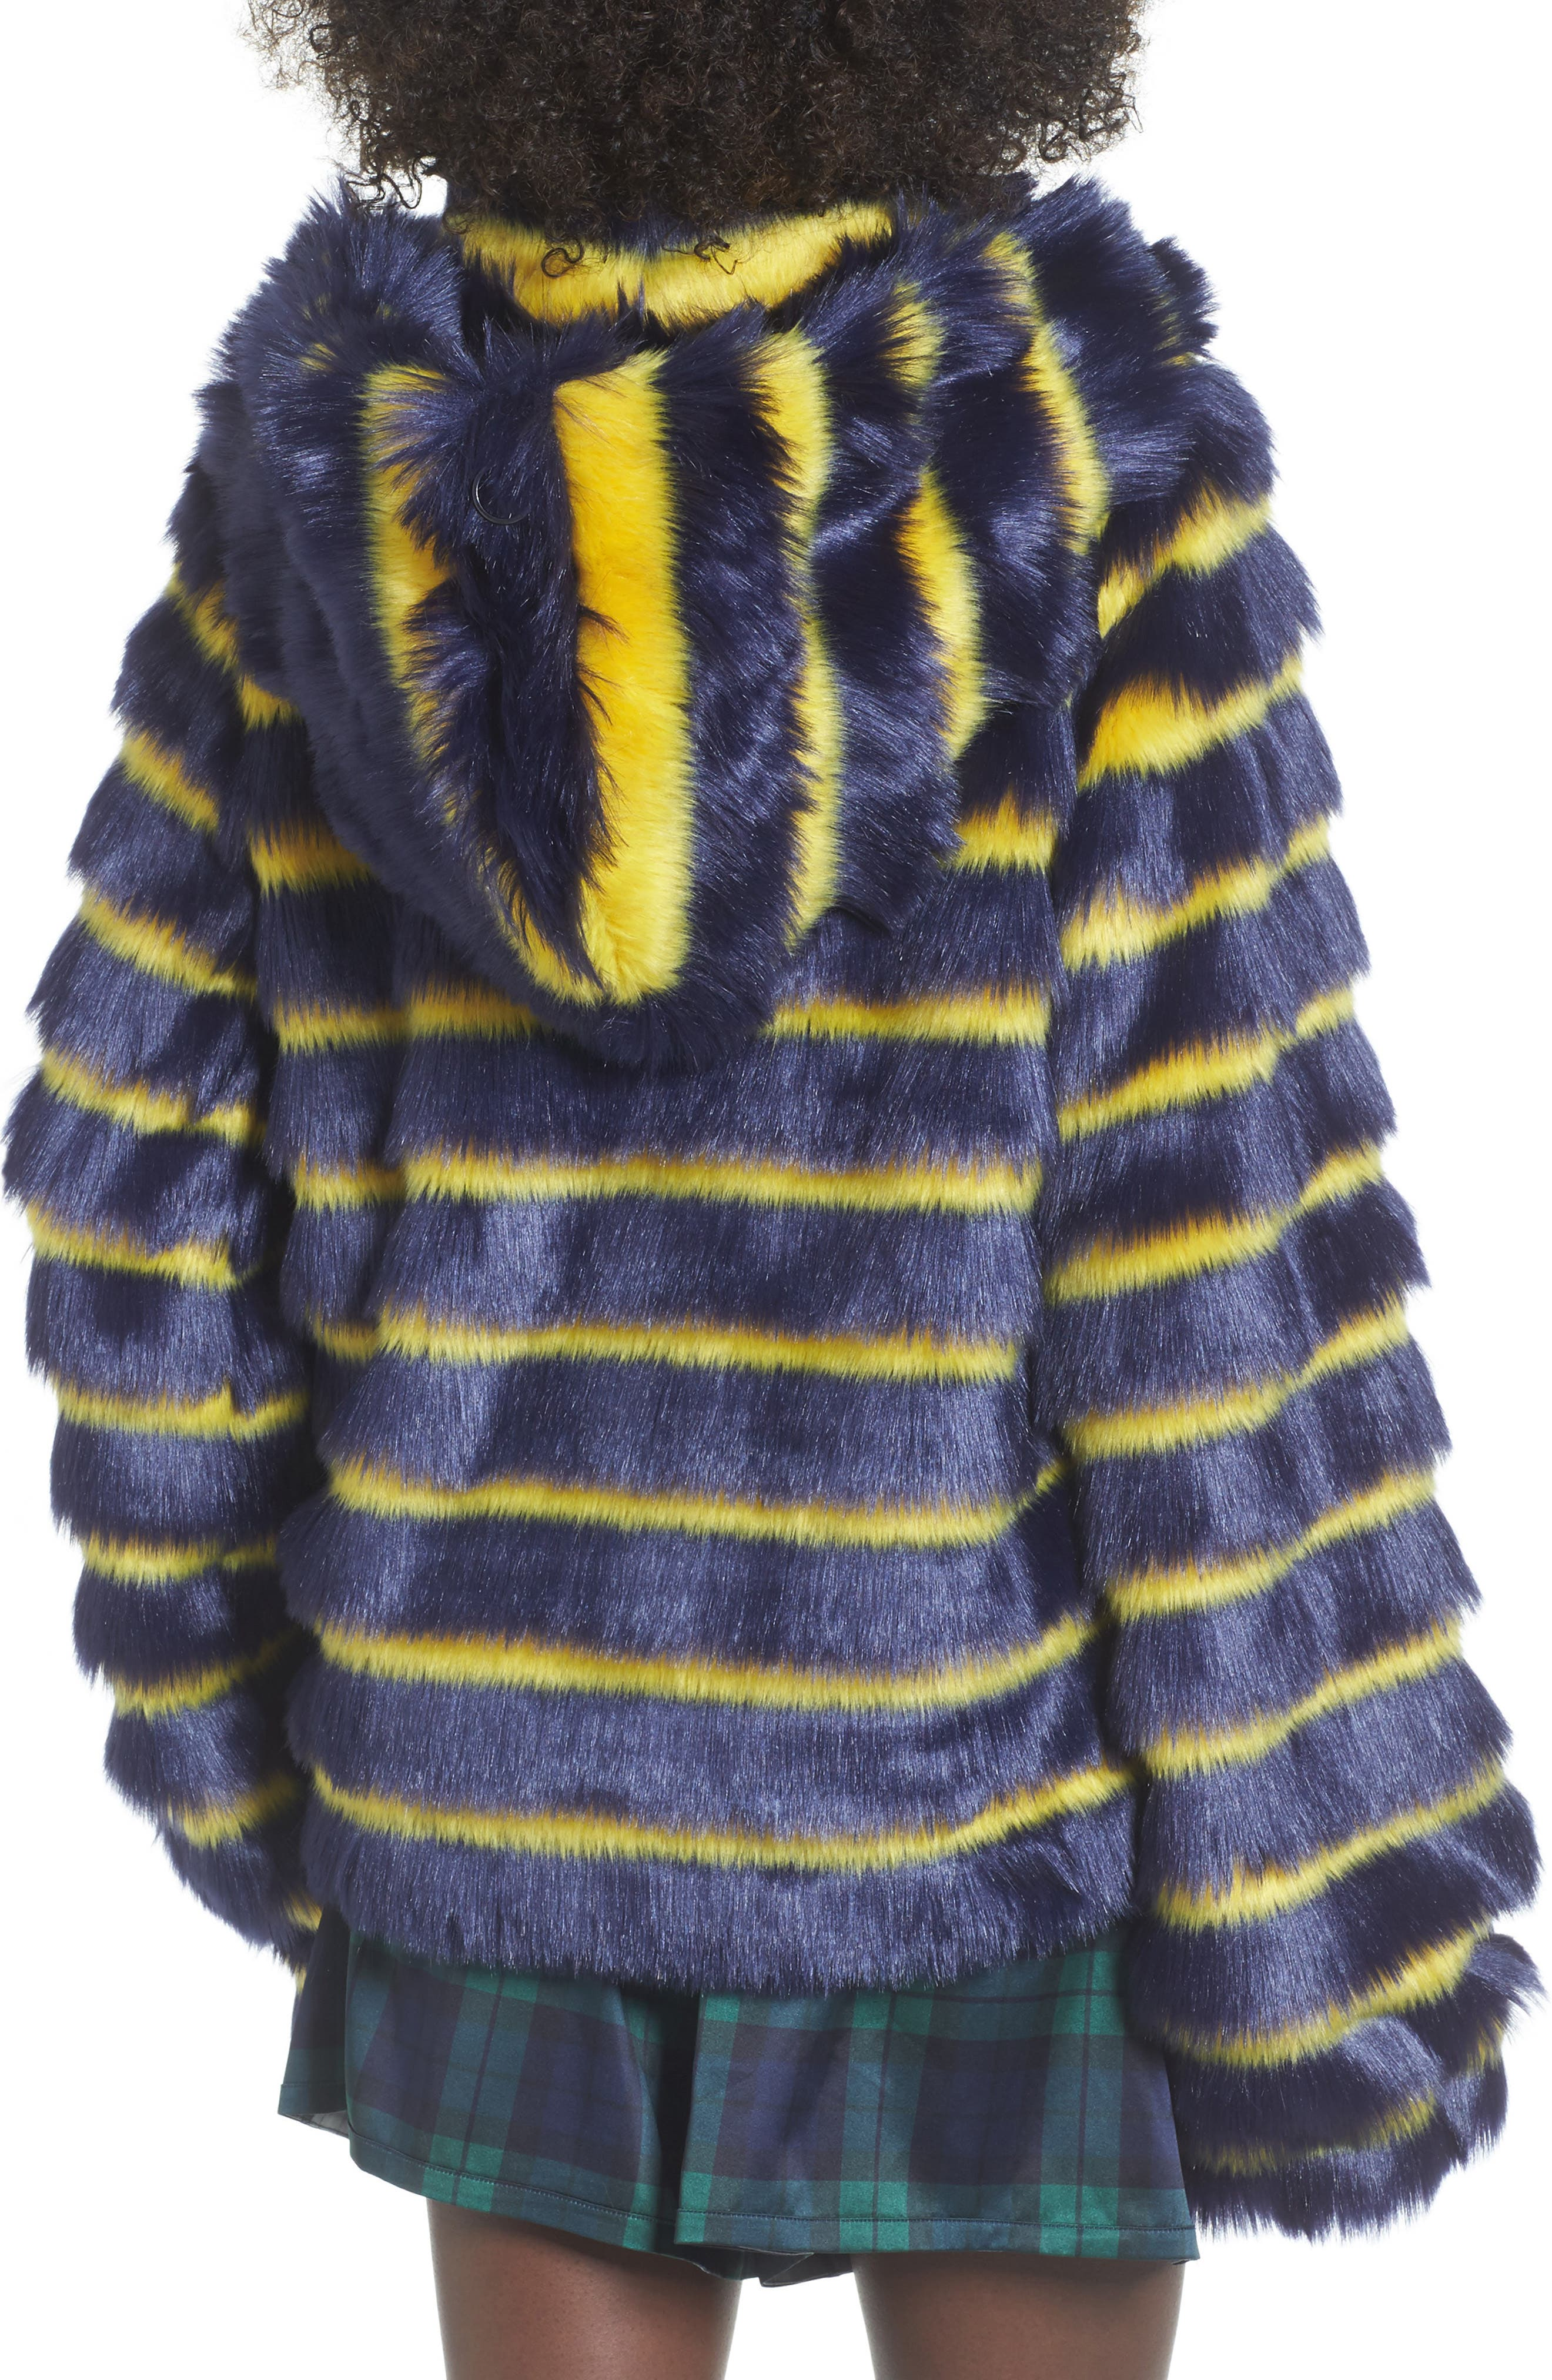 PUMA by Rihanna Faux Shearling Hooded Jacket,                             Alternate thumbnail 2, color,                             Navy/ Yellow Stripe